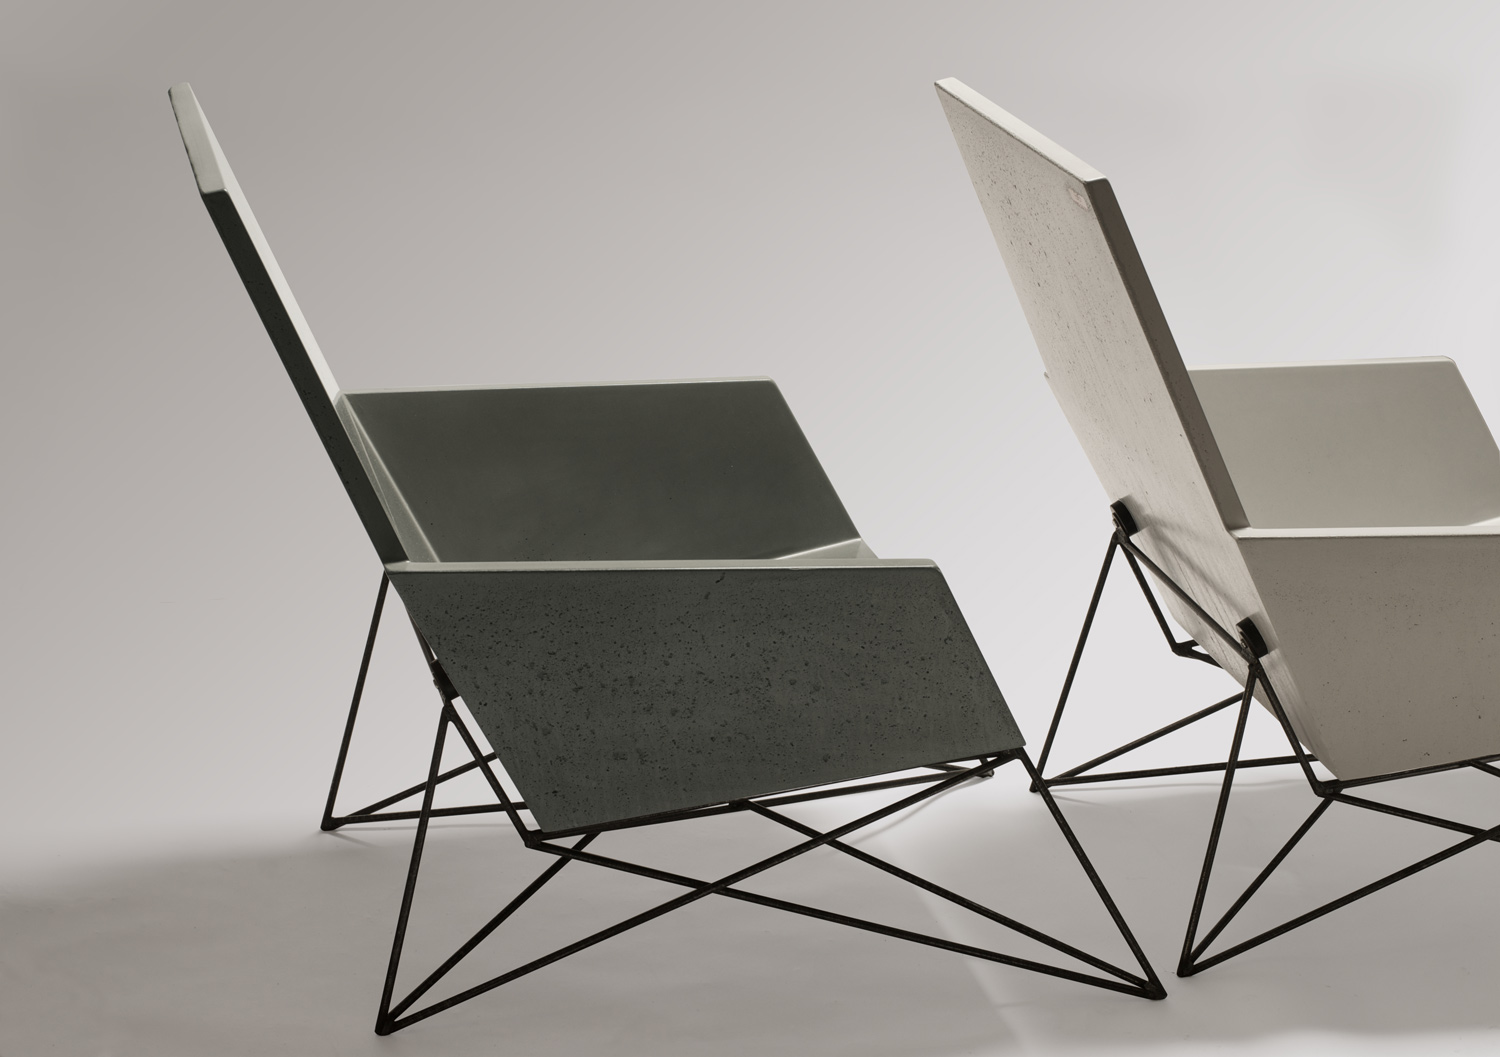 2 Modern Muskoka Outdoor Chairs, one in natural grey concrete and the other in white